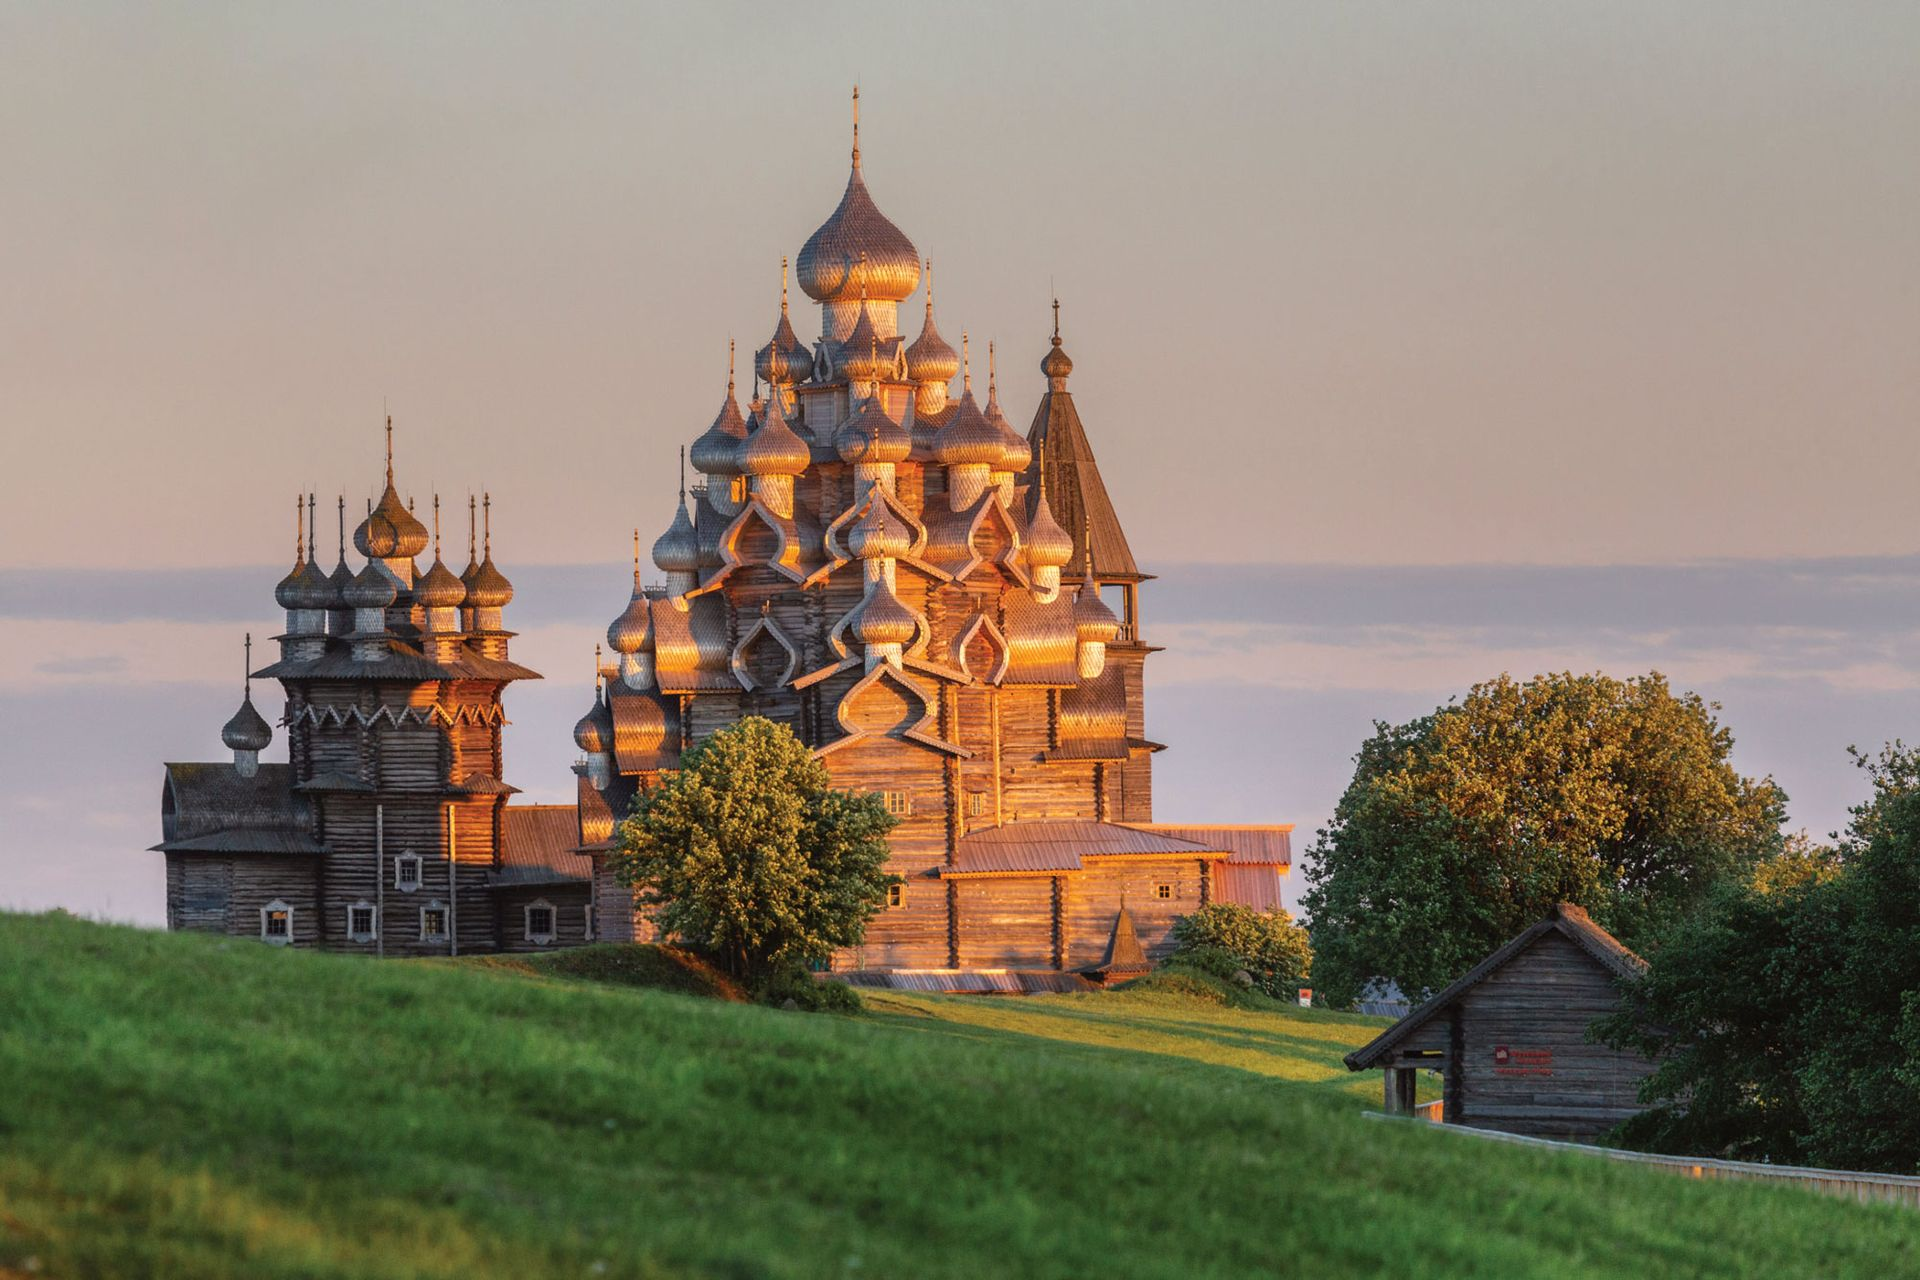 Located on a remote island in Lake Onega, the Russian Orthodox church is part of an ensemble of storied wooden buildings known as Kizhi Pogost, a Unesco World Heritage Site since 1990 Photo: Igor Georgievsky